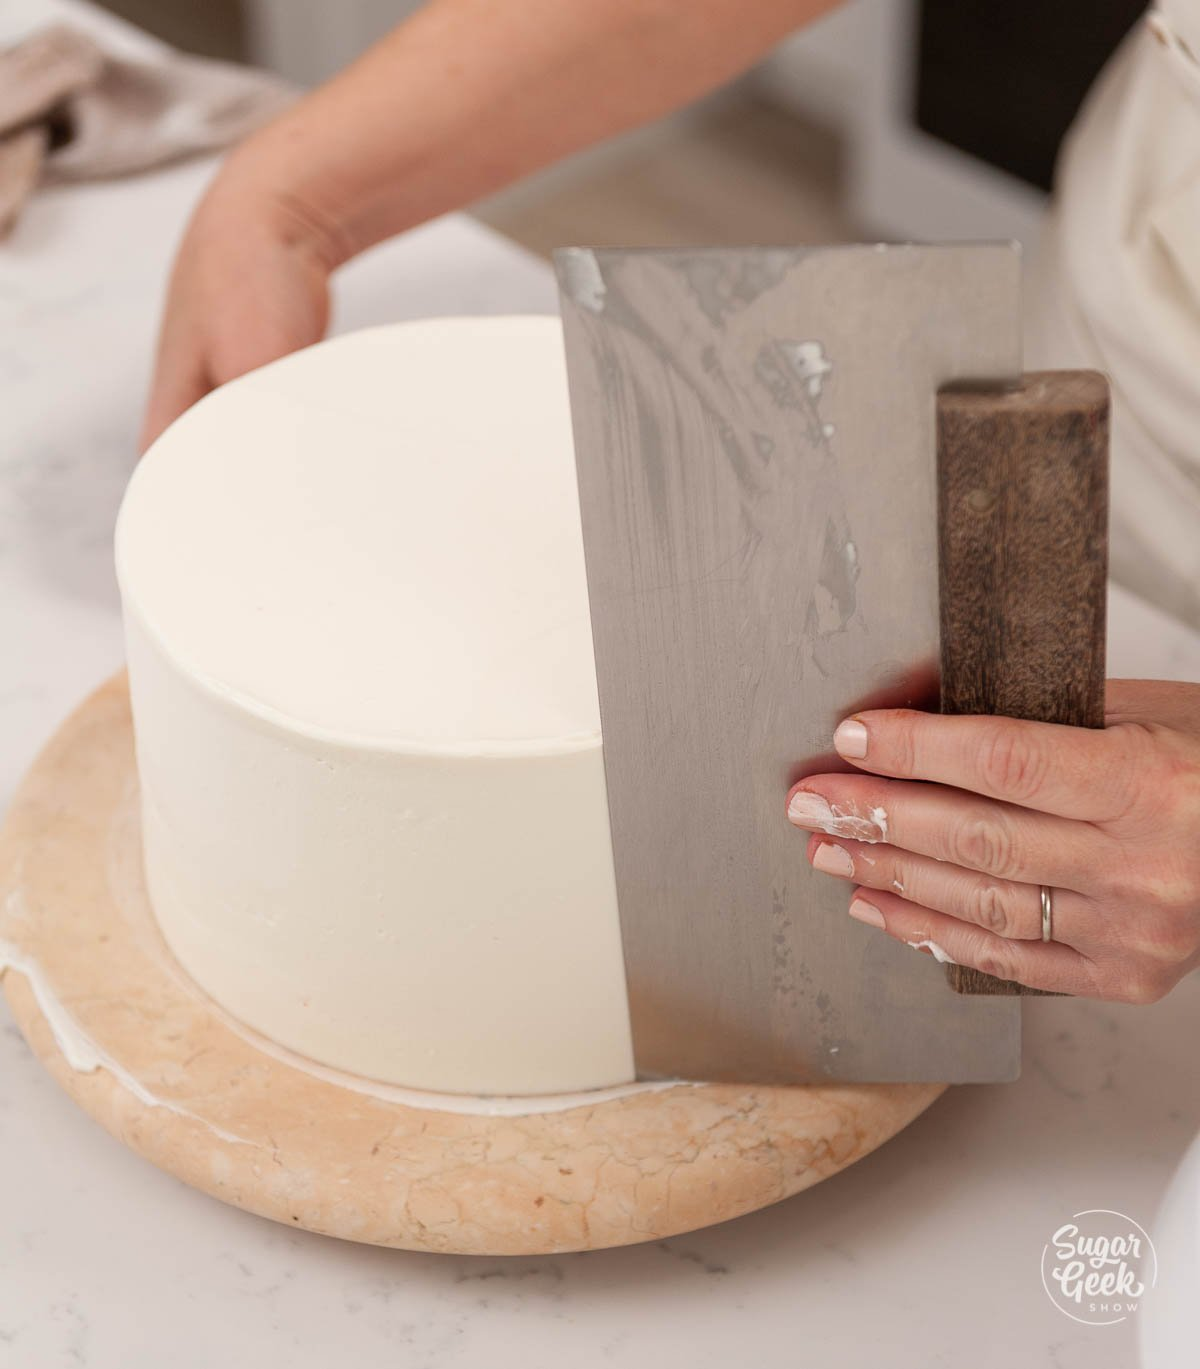 smoothing red white and blue ice cream cake with bench scraper